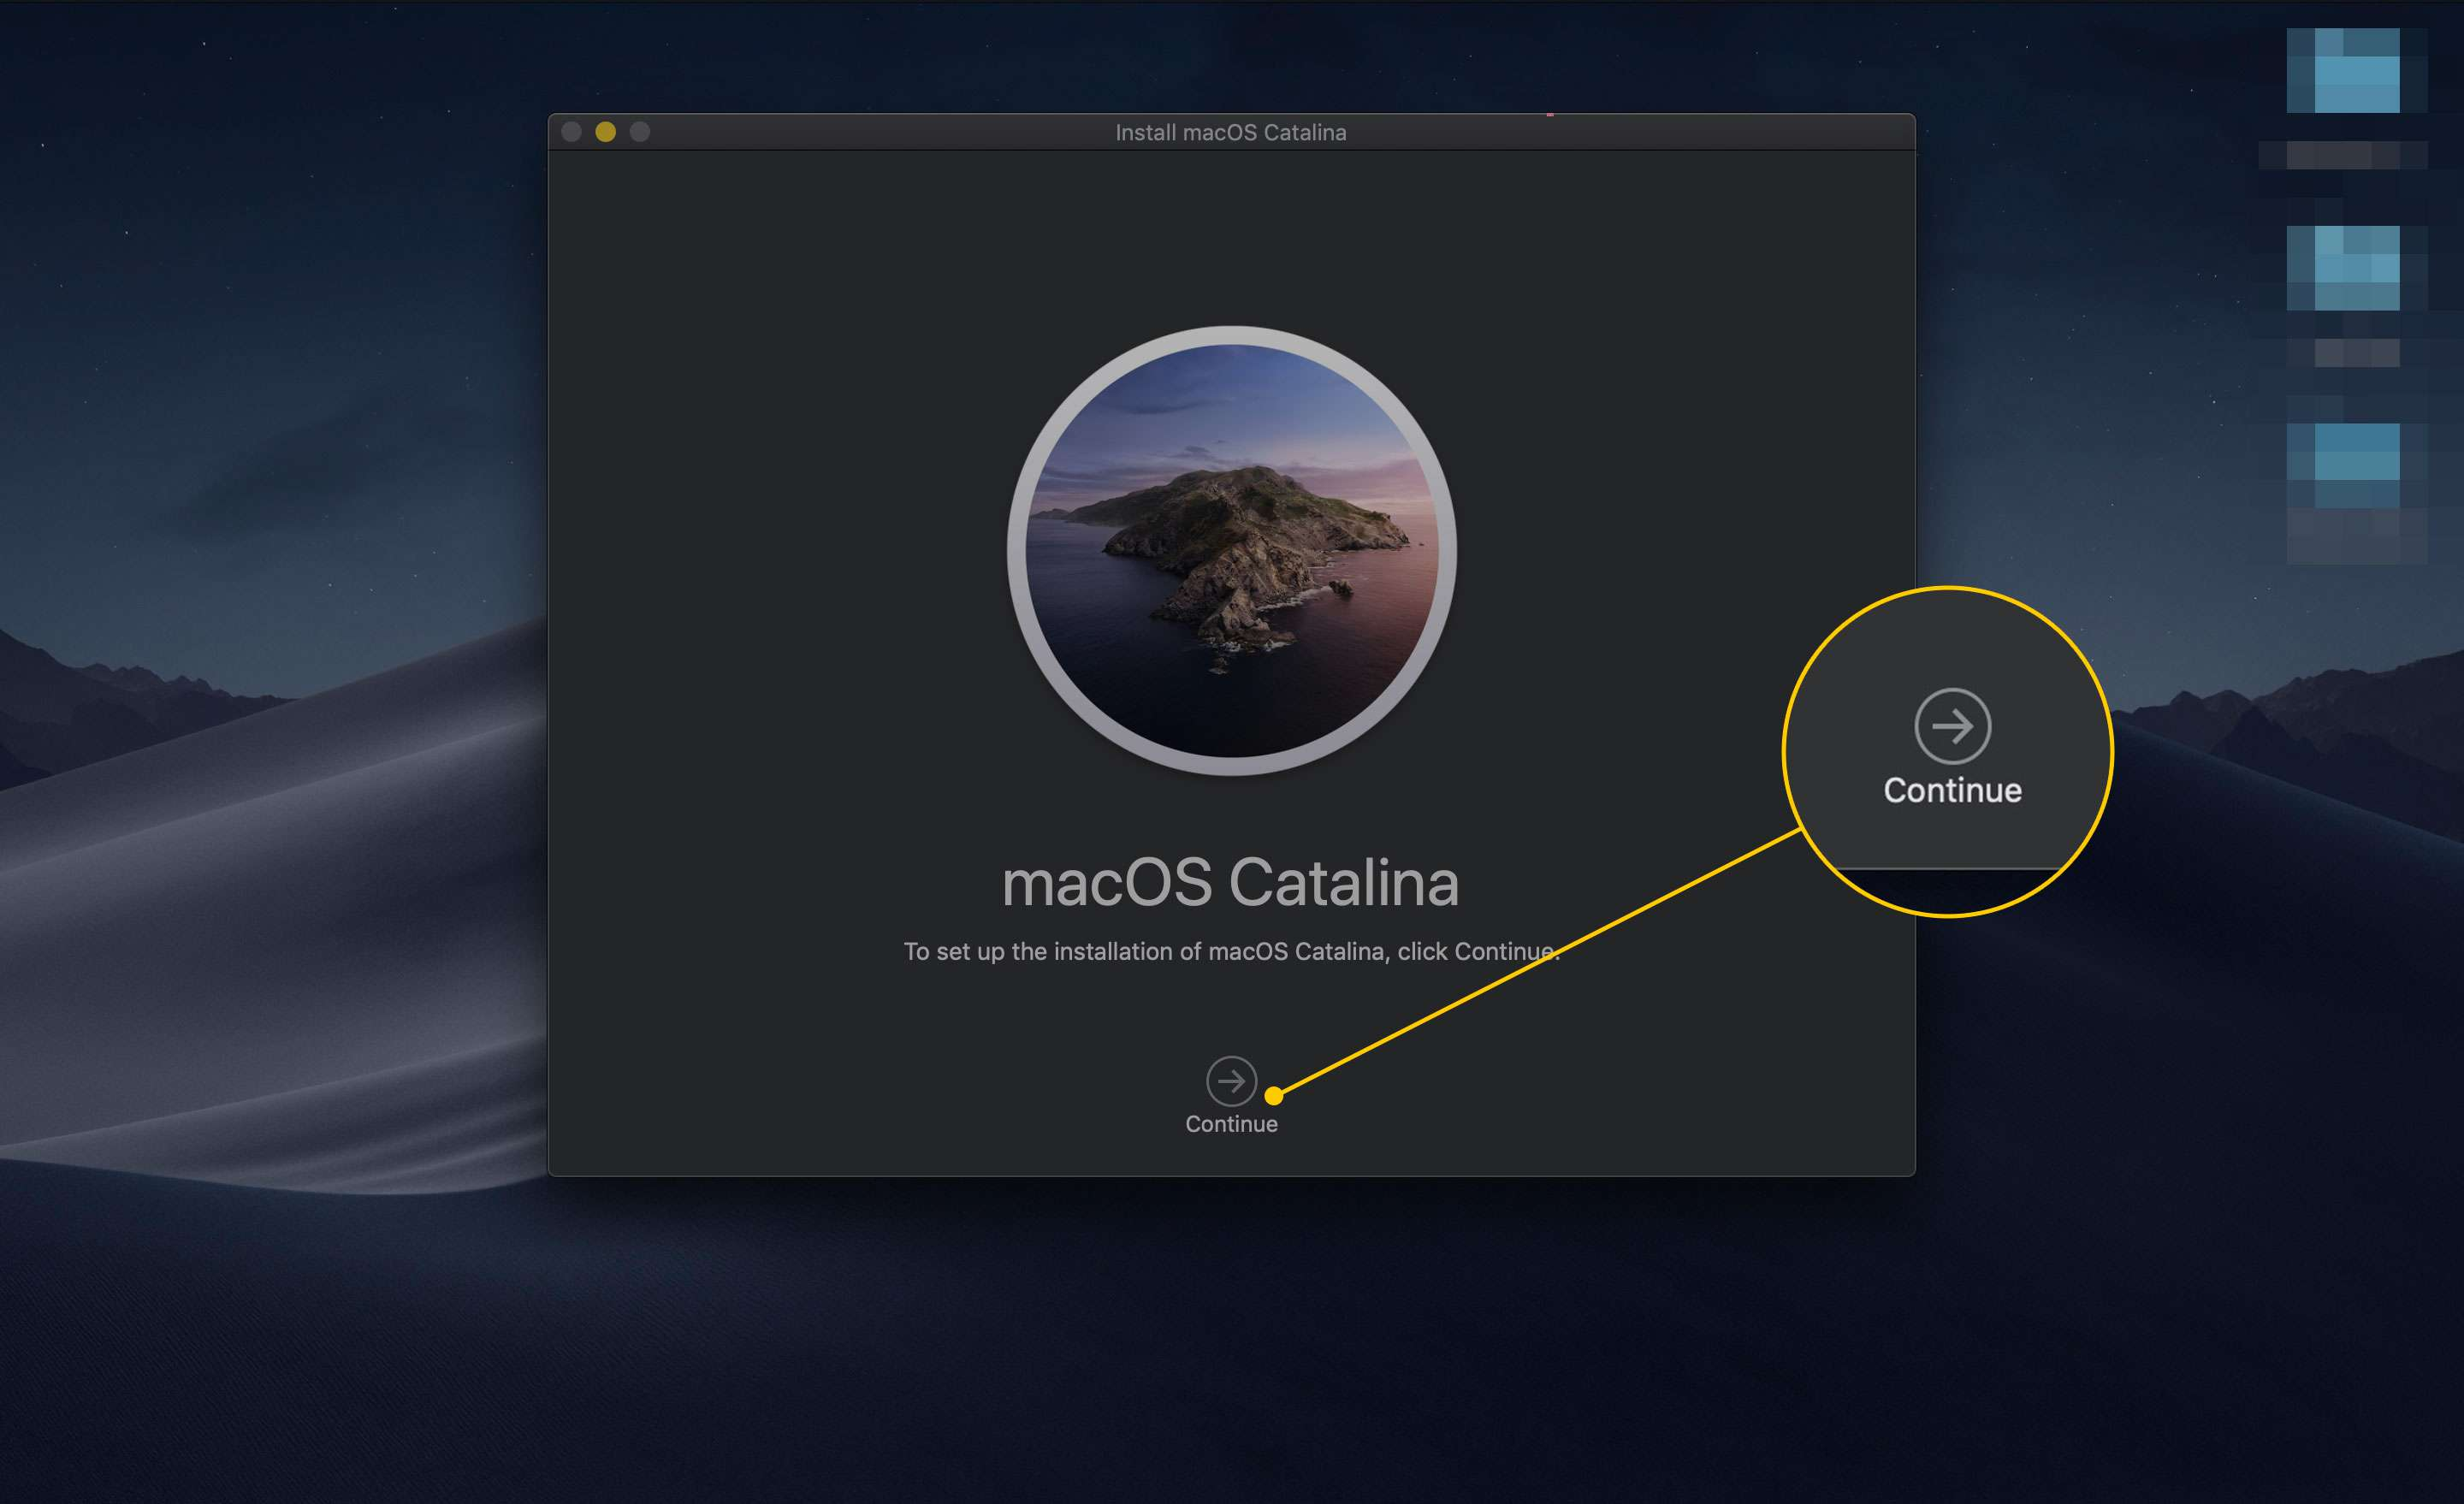 Continue button in Install macOS Catalina